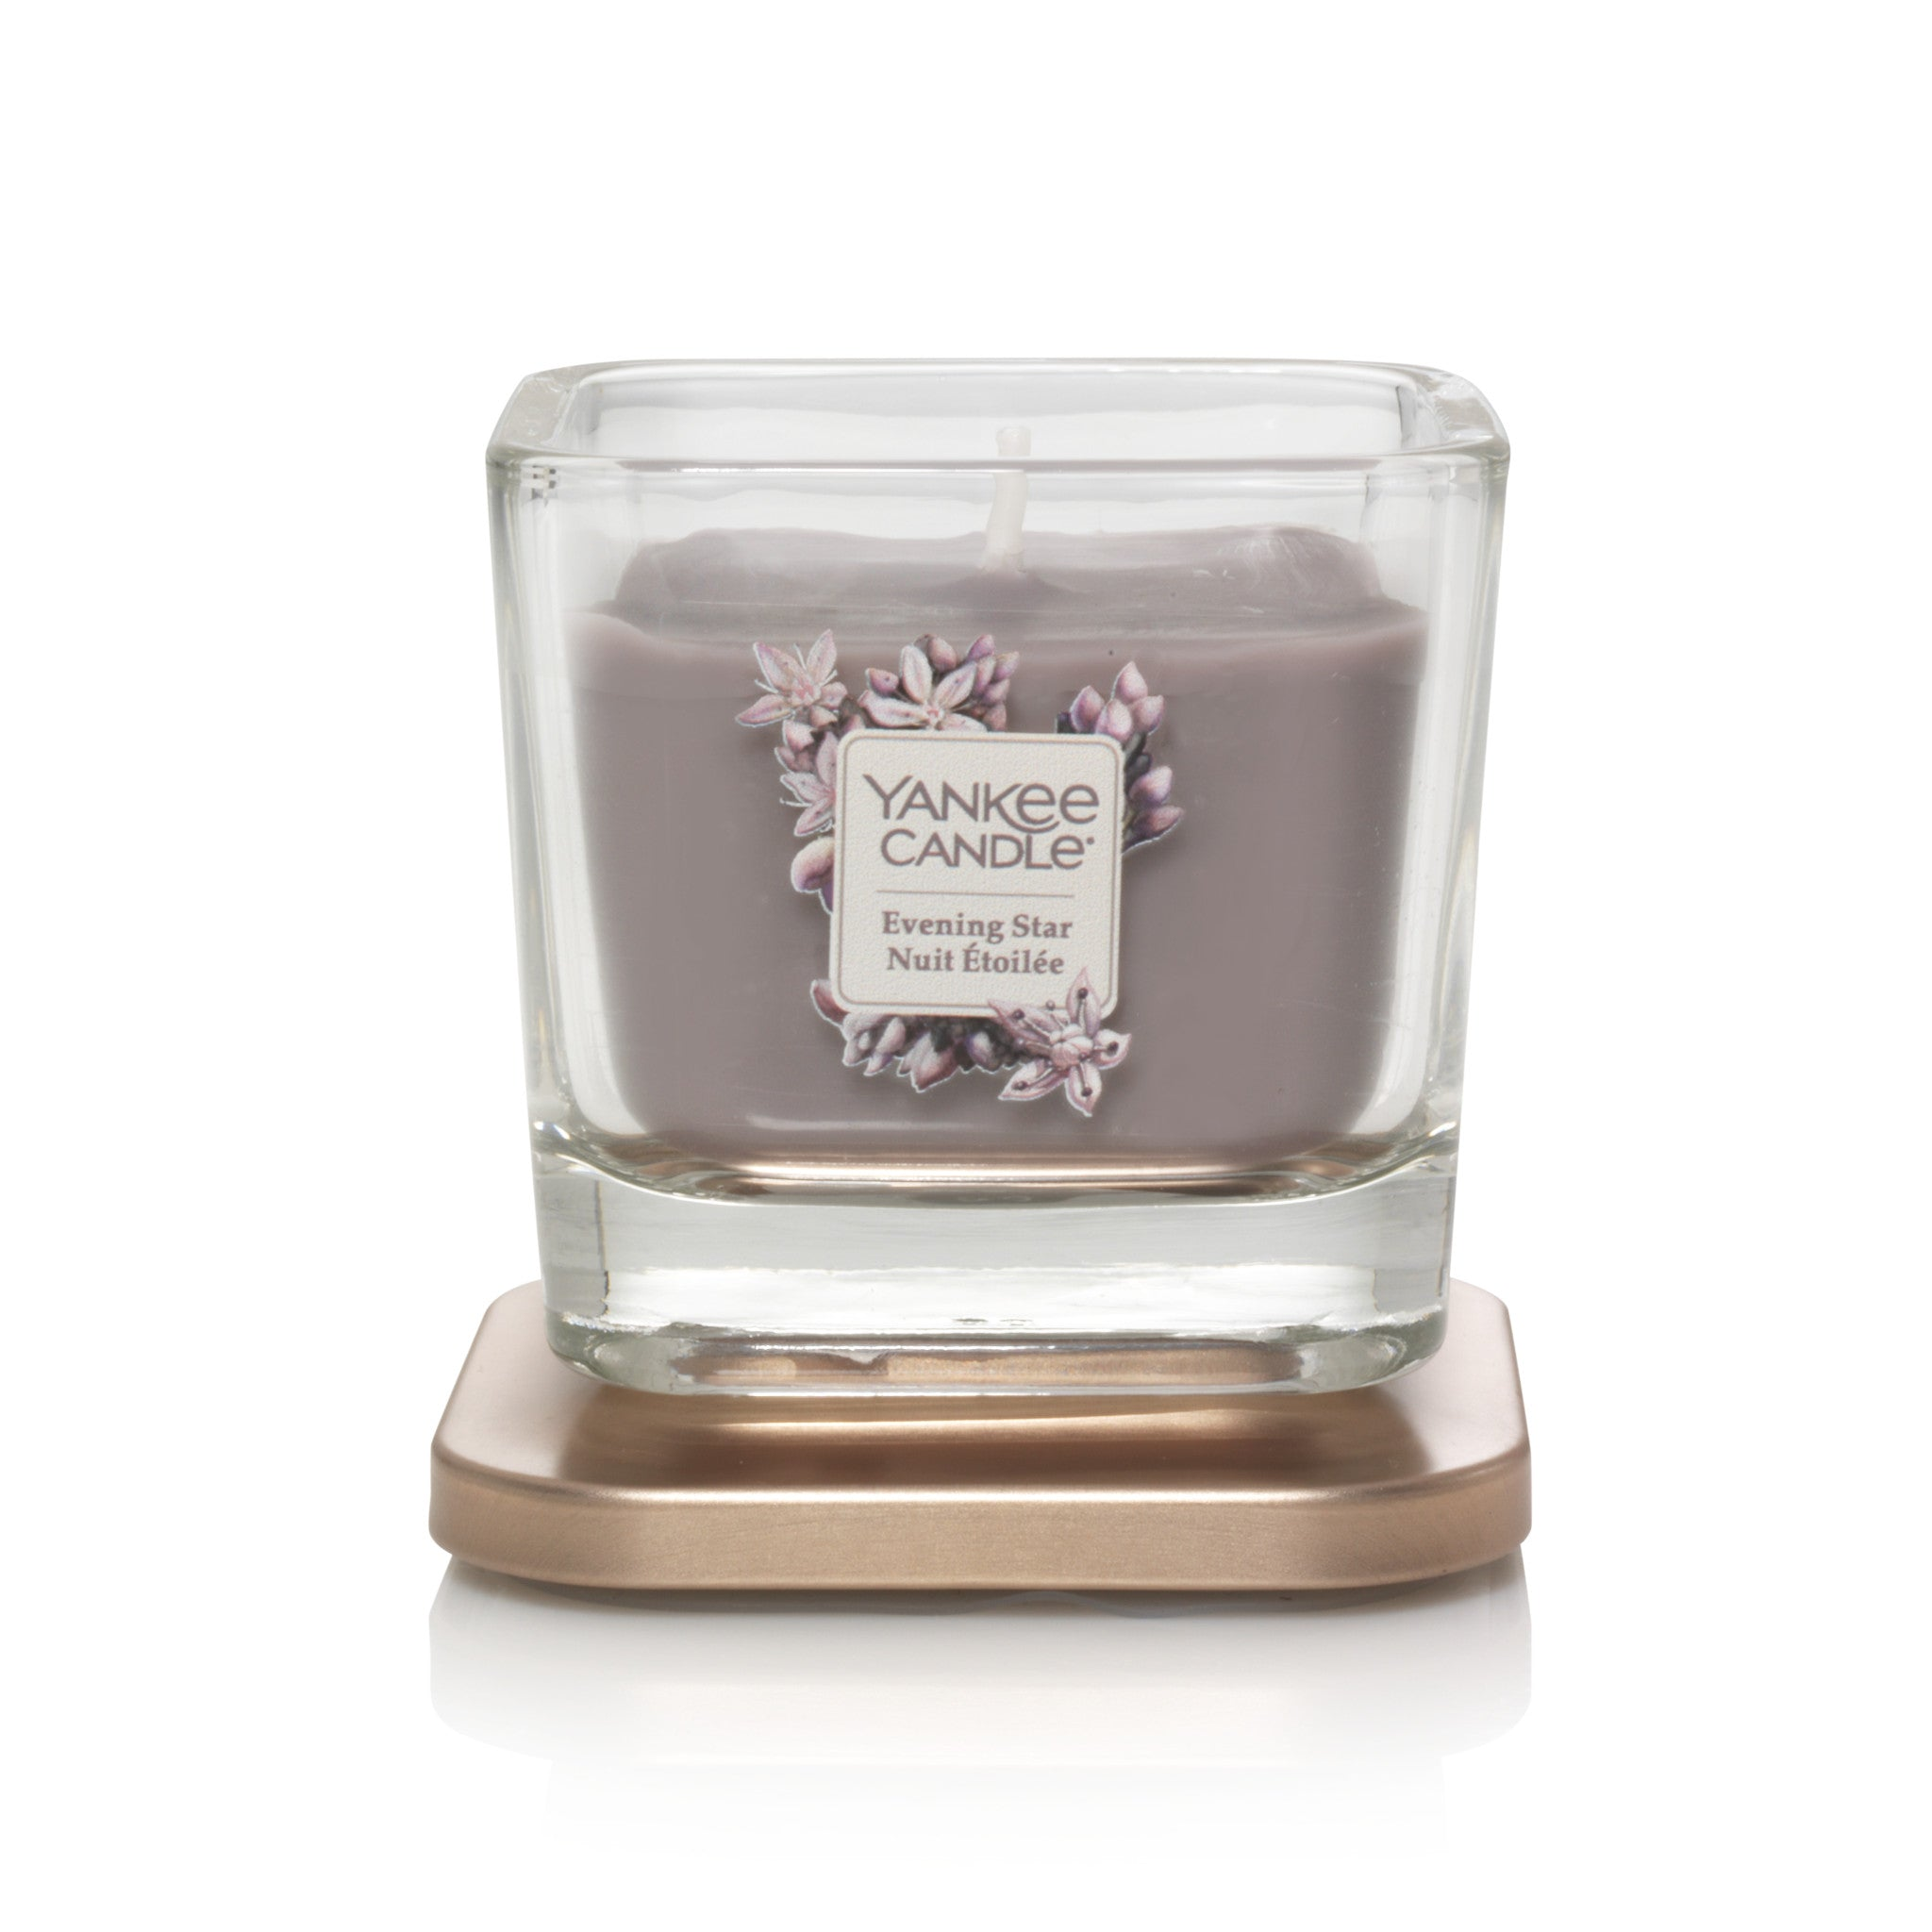 EVENING STAR -Yankee Candle- Candela Piccola